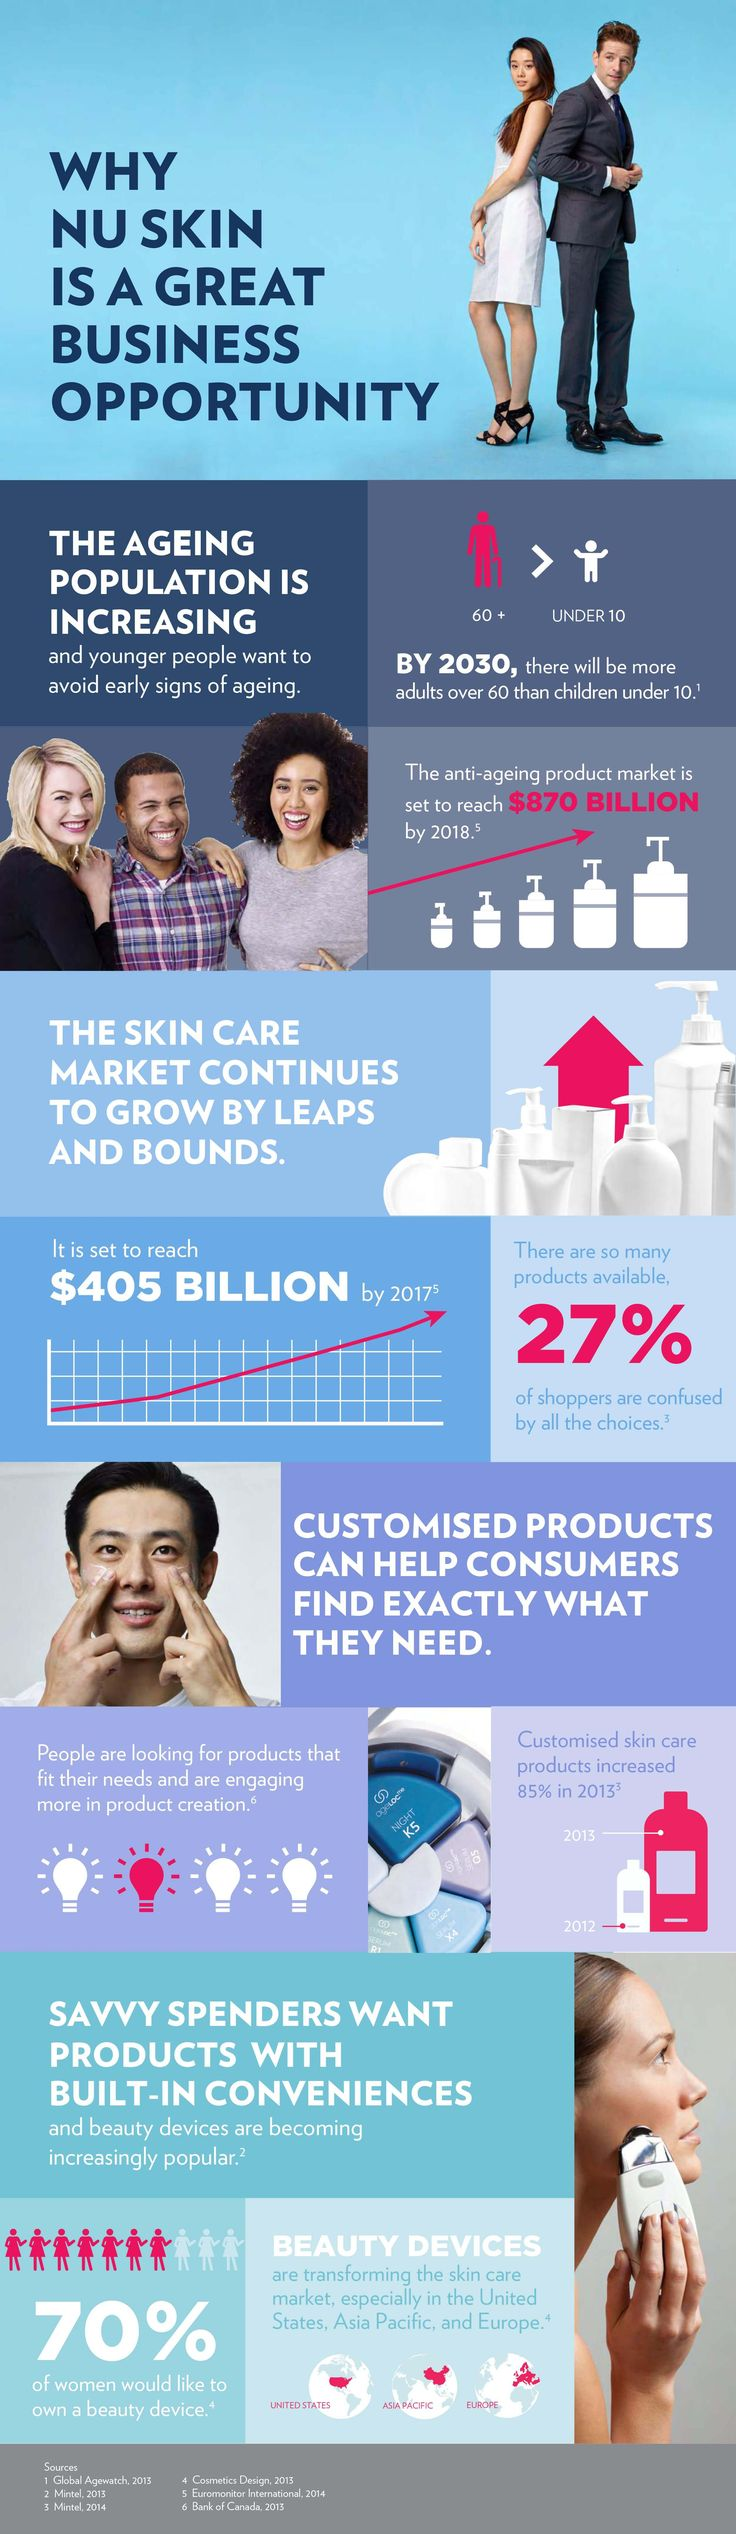 Personalise your skincare, get involved in the fastest growing industry worldwide!  Contact me today to learn more about our exciting, innovative, work from home or anywhere opportunity with no start costs, start immediately. Visit me at www.streetlife.co... Love and Light Wiki Wikaira ♥  #skincare #antiageing #nuskin #businessopportunity #personaliseddevices #healthtechnology